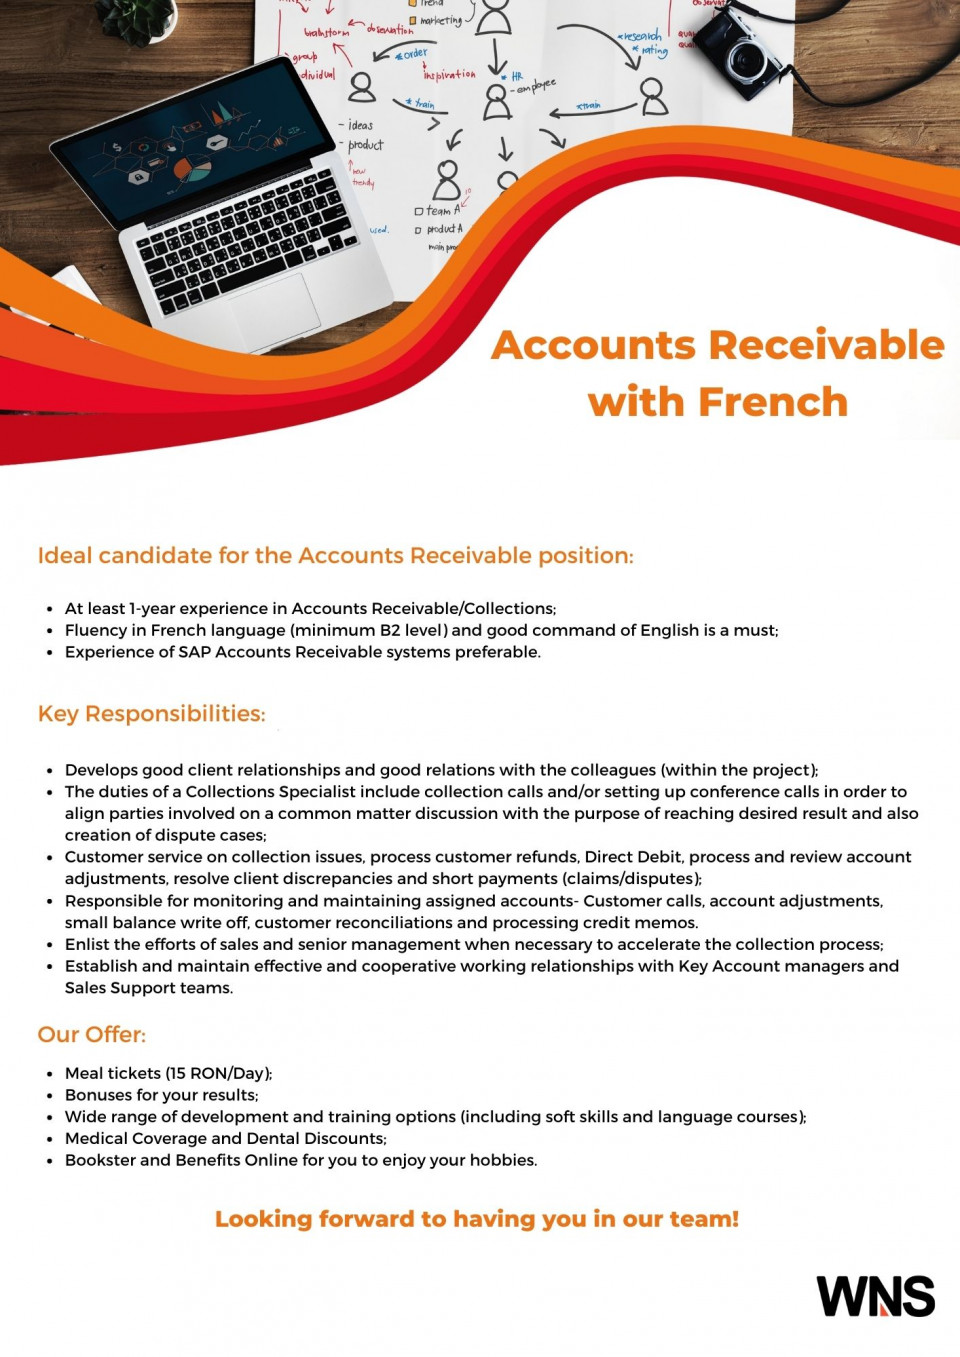 Ideal candidate for the Accounts Receivable position: